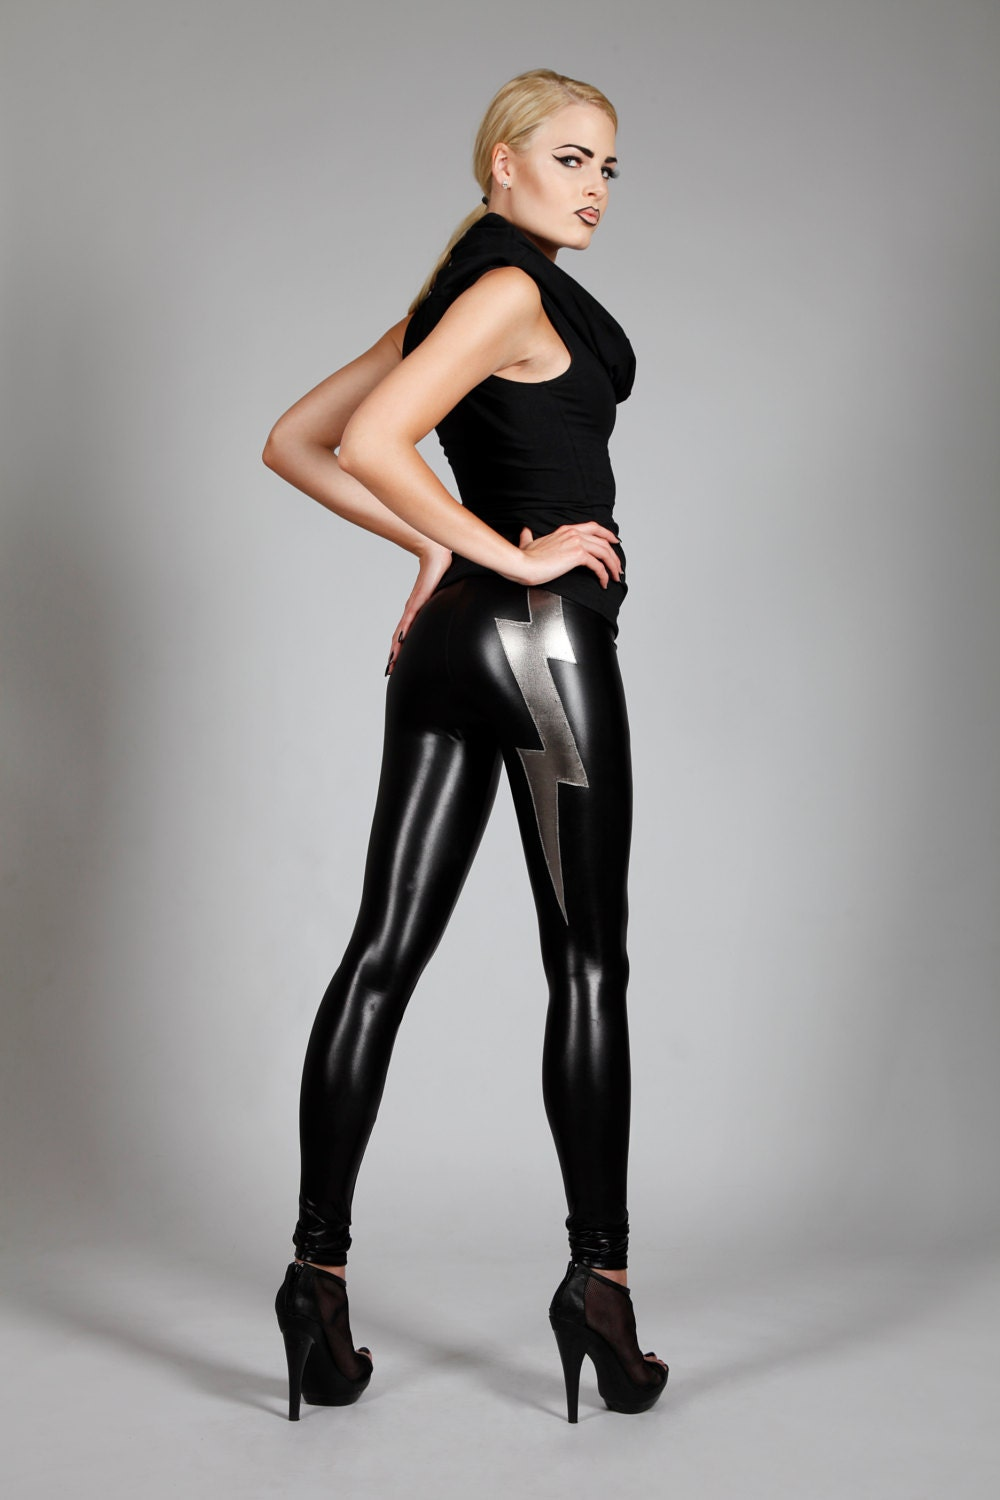 Find great deals on eBay for shiny leather pants. Shop with confidence.